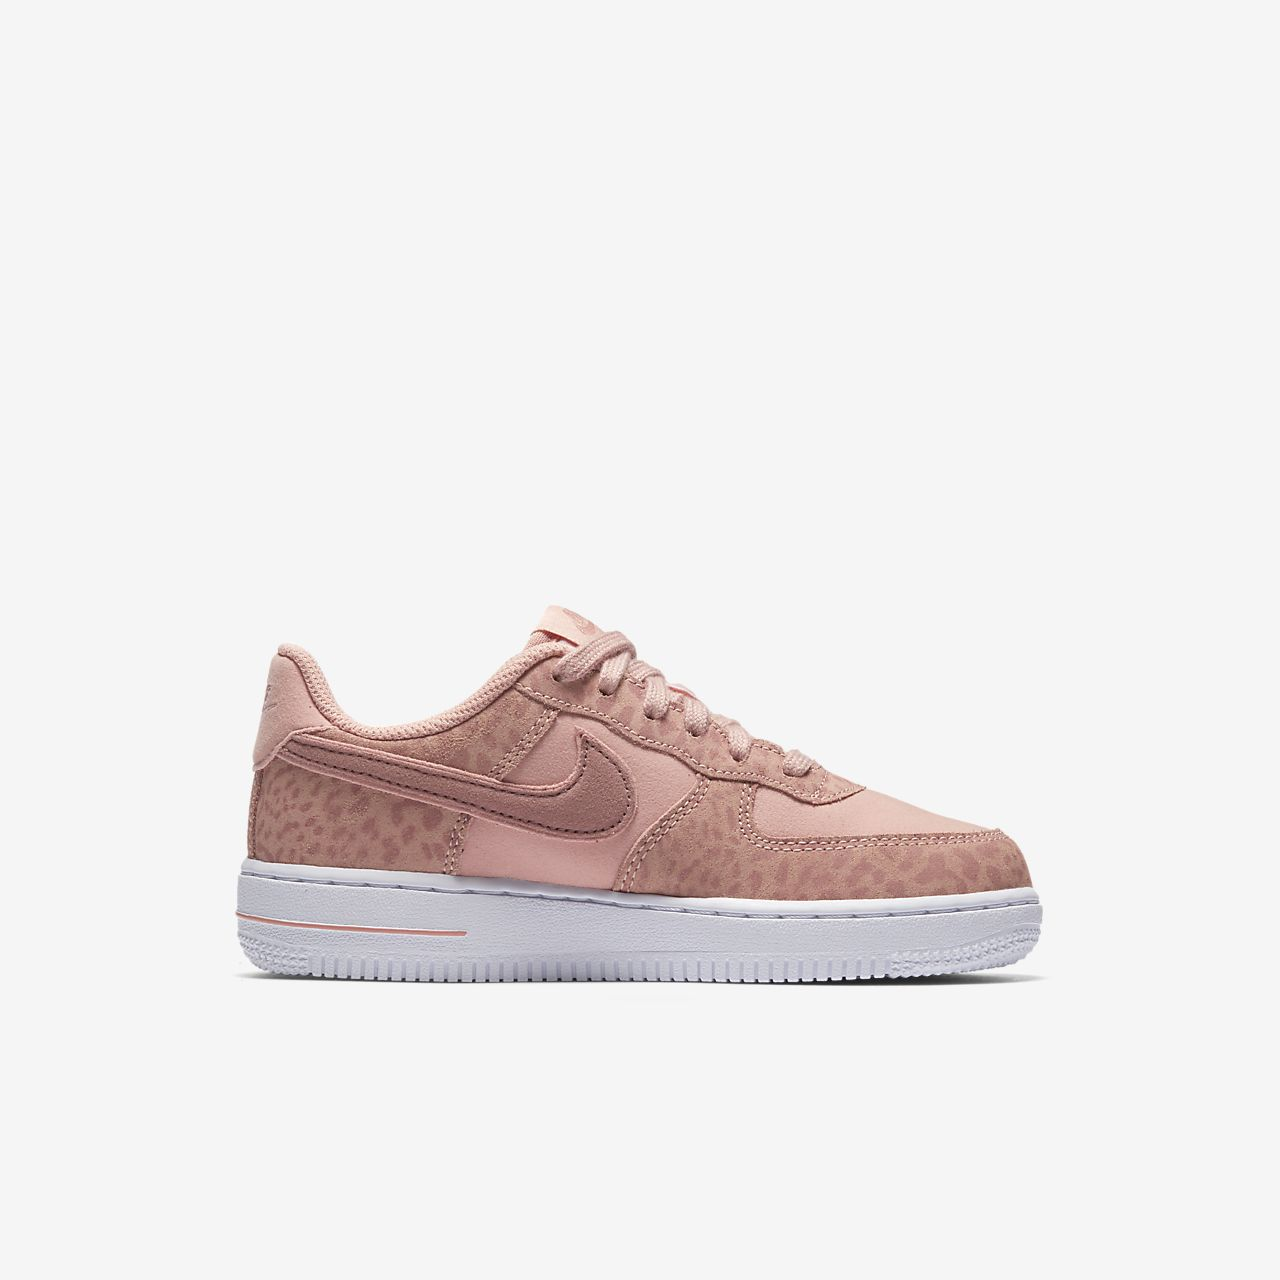 Off75 Sconti Bambino Nike Air Acquista Force One 7fw1XfOq   hers ... 26f810c52bc